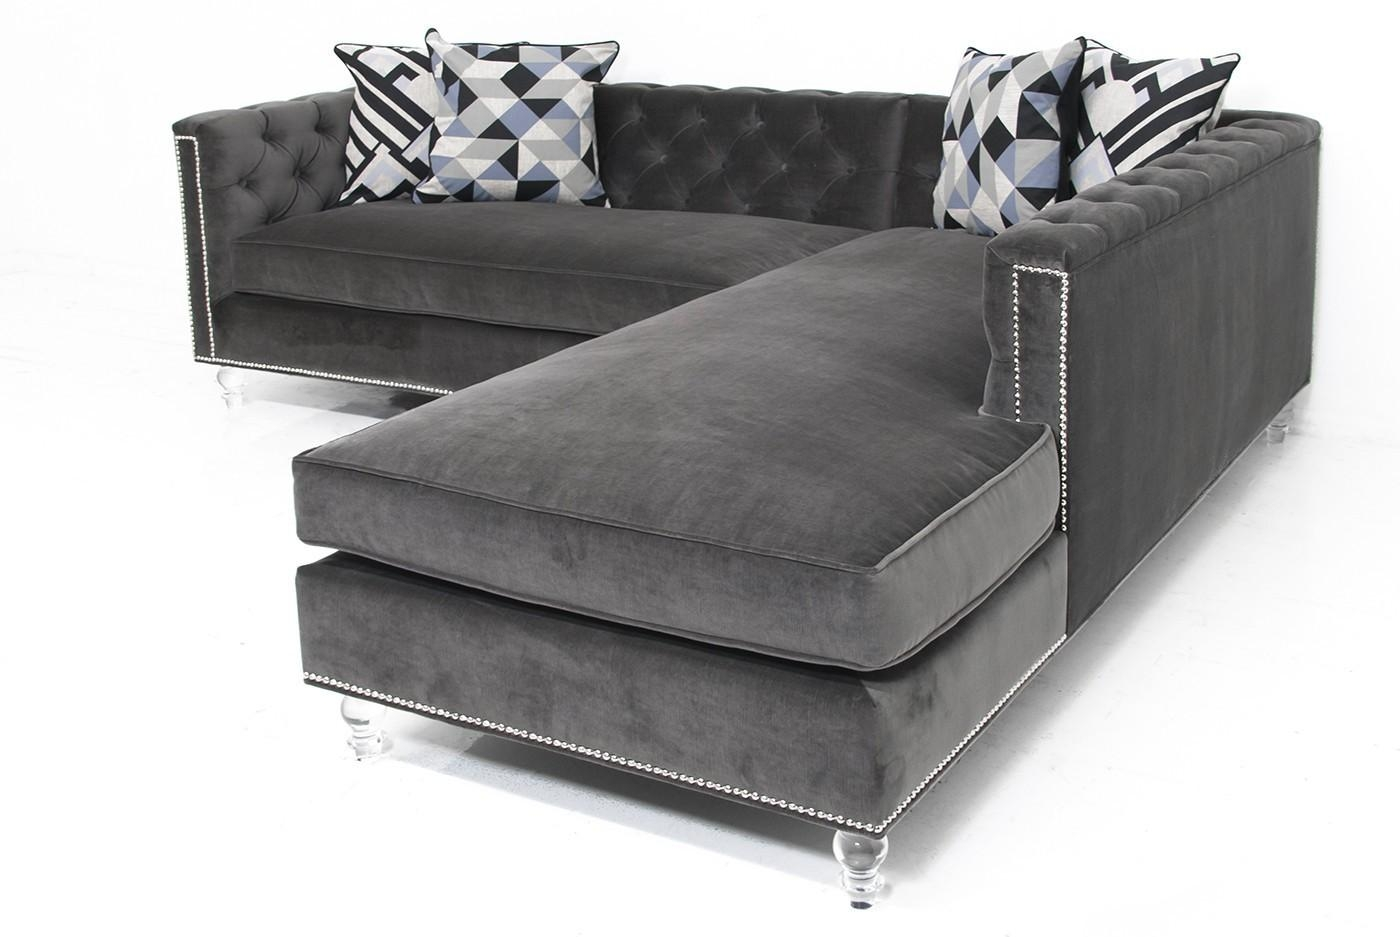 Sofa: Comfort And Style Is Evident In This Dynamic With Tufted Regarding Velvet Sofas Sectionals (Image 13 of 20)